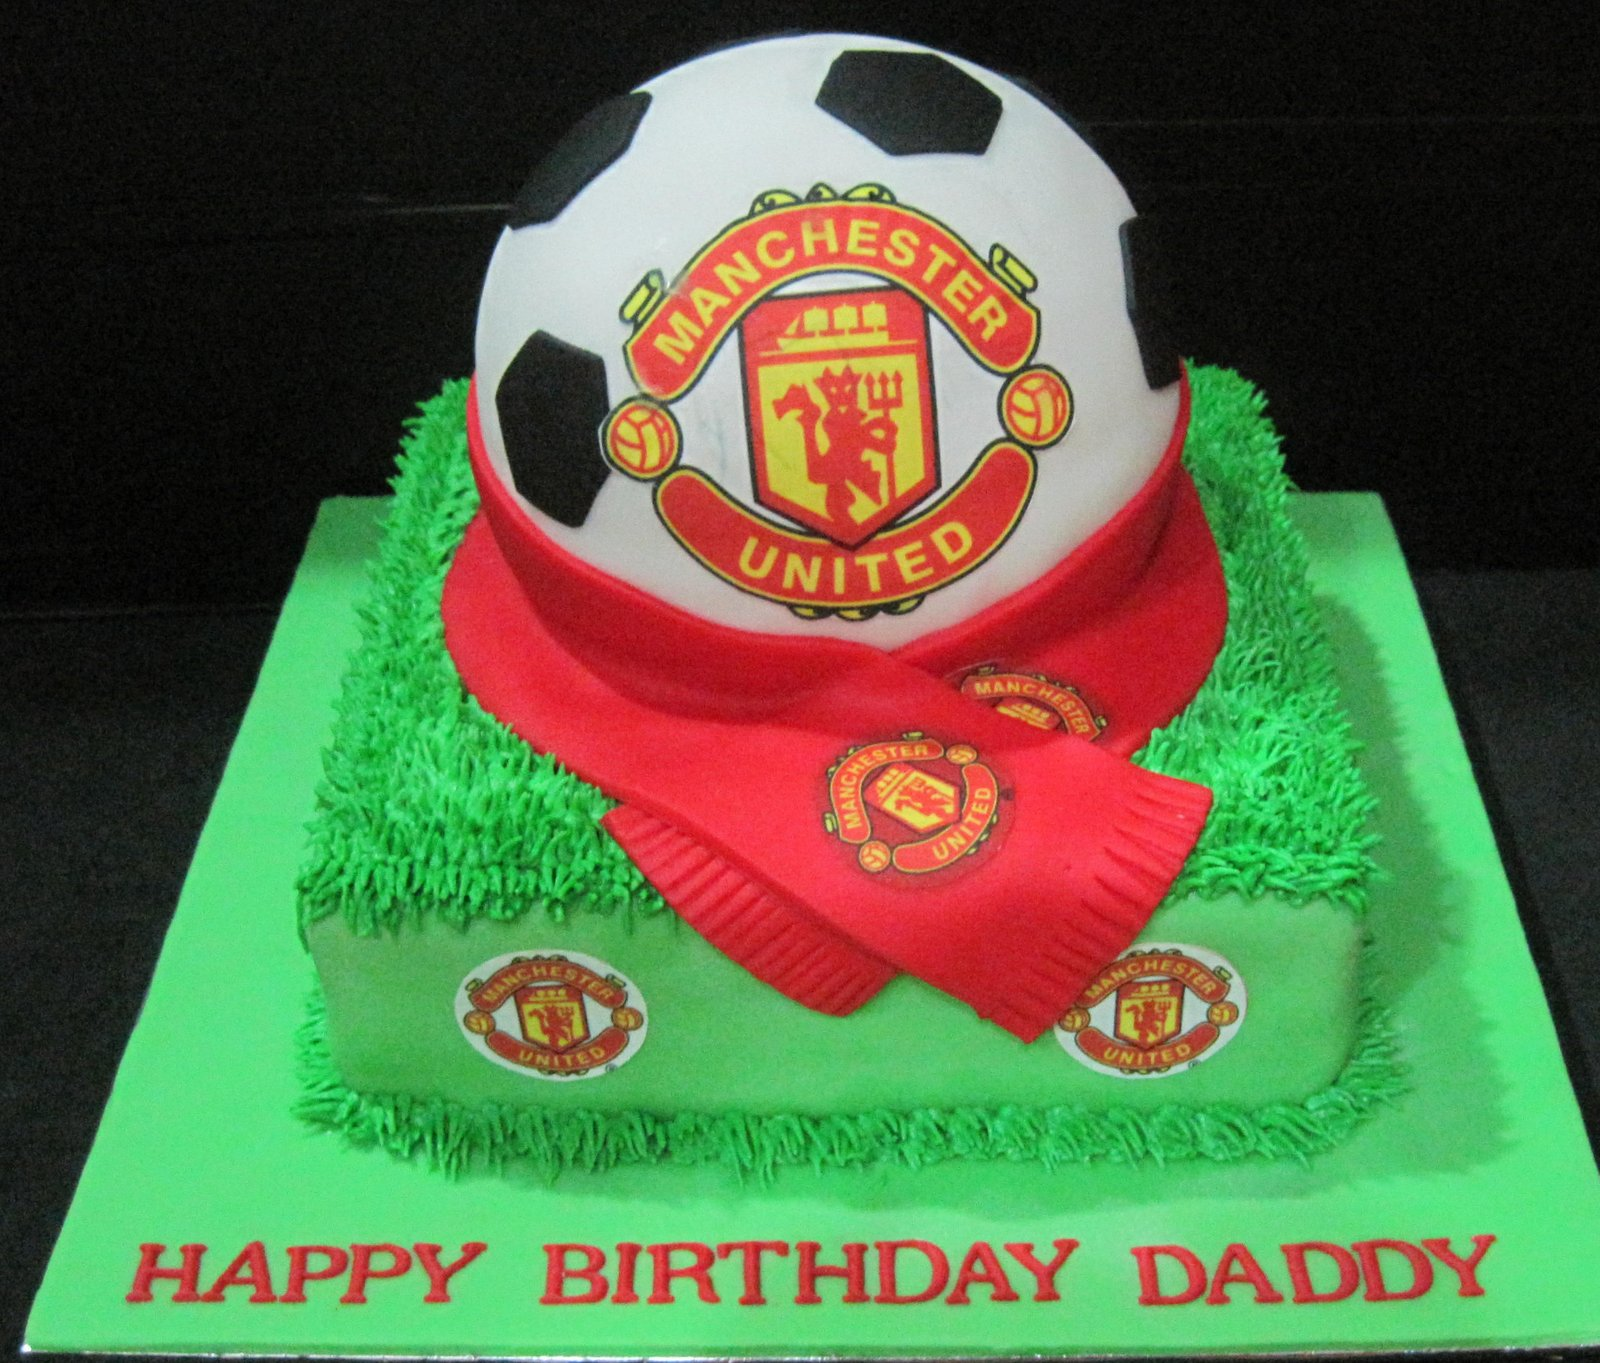 Cake Decorating Ideas For Football : Cake Decorating Football Ii Cake Decorating Instructions ...